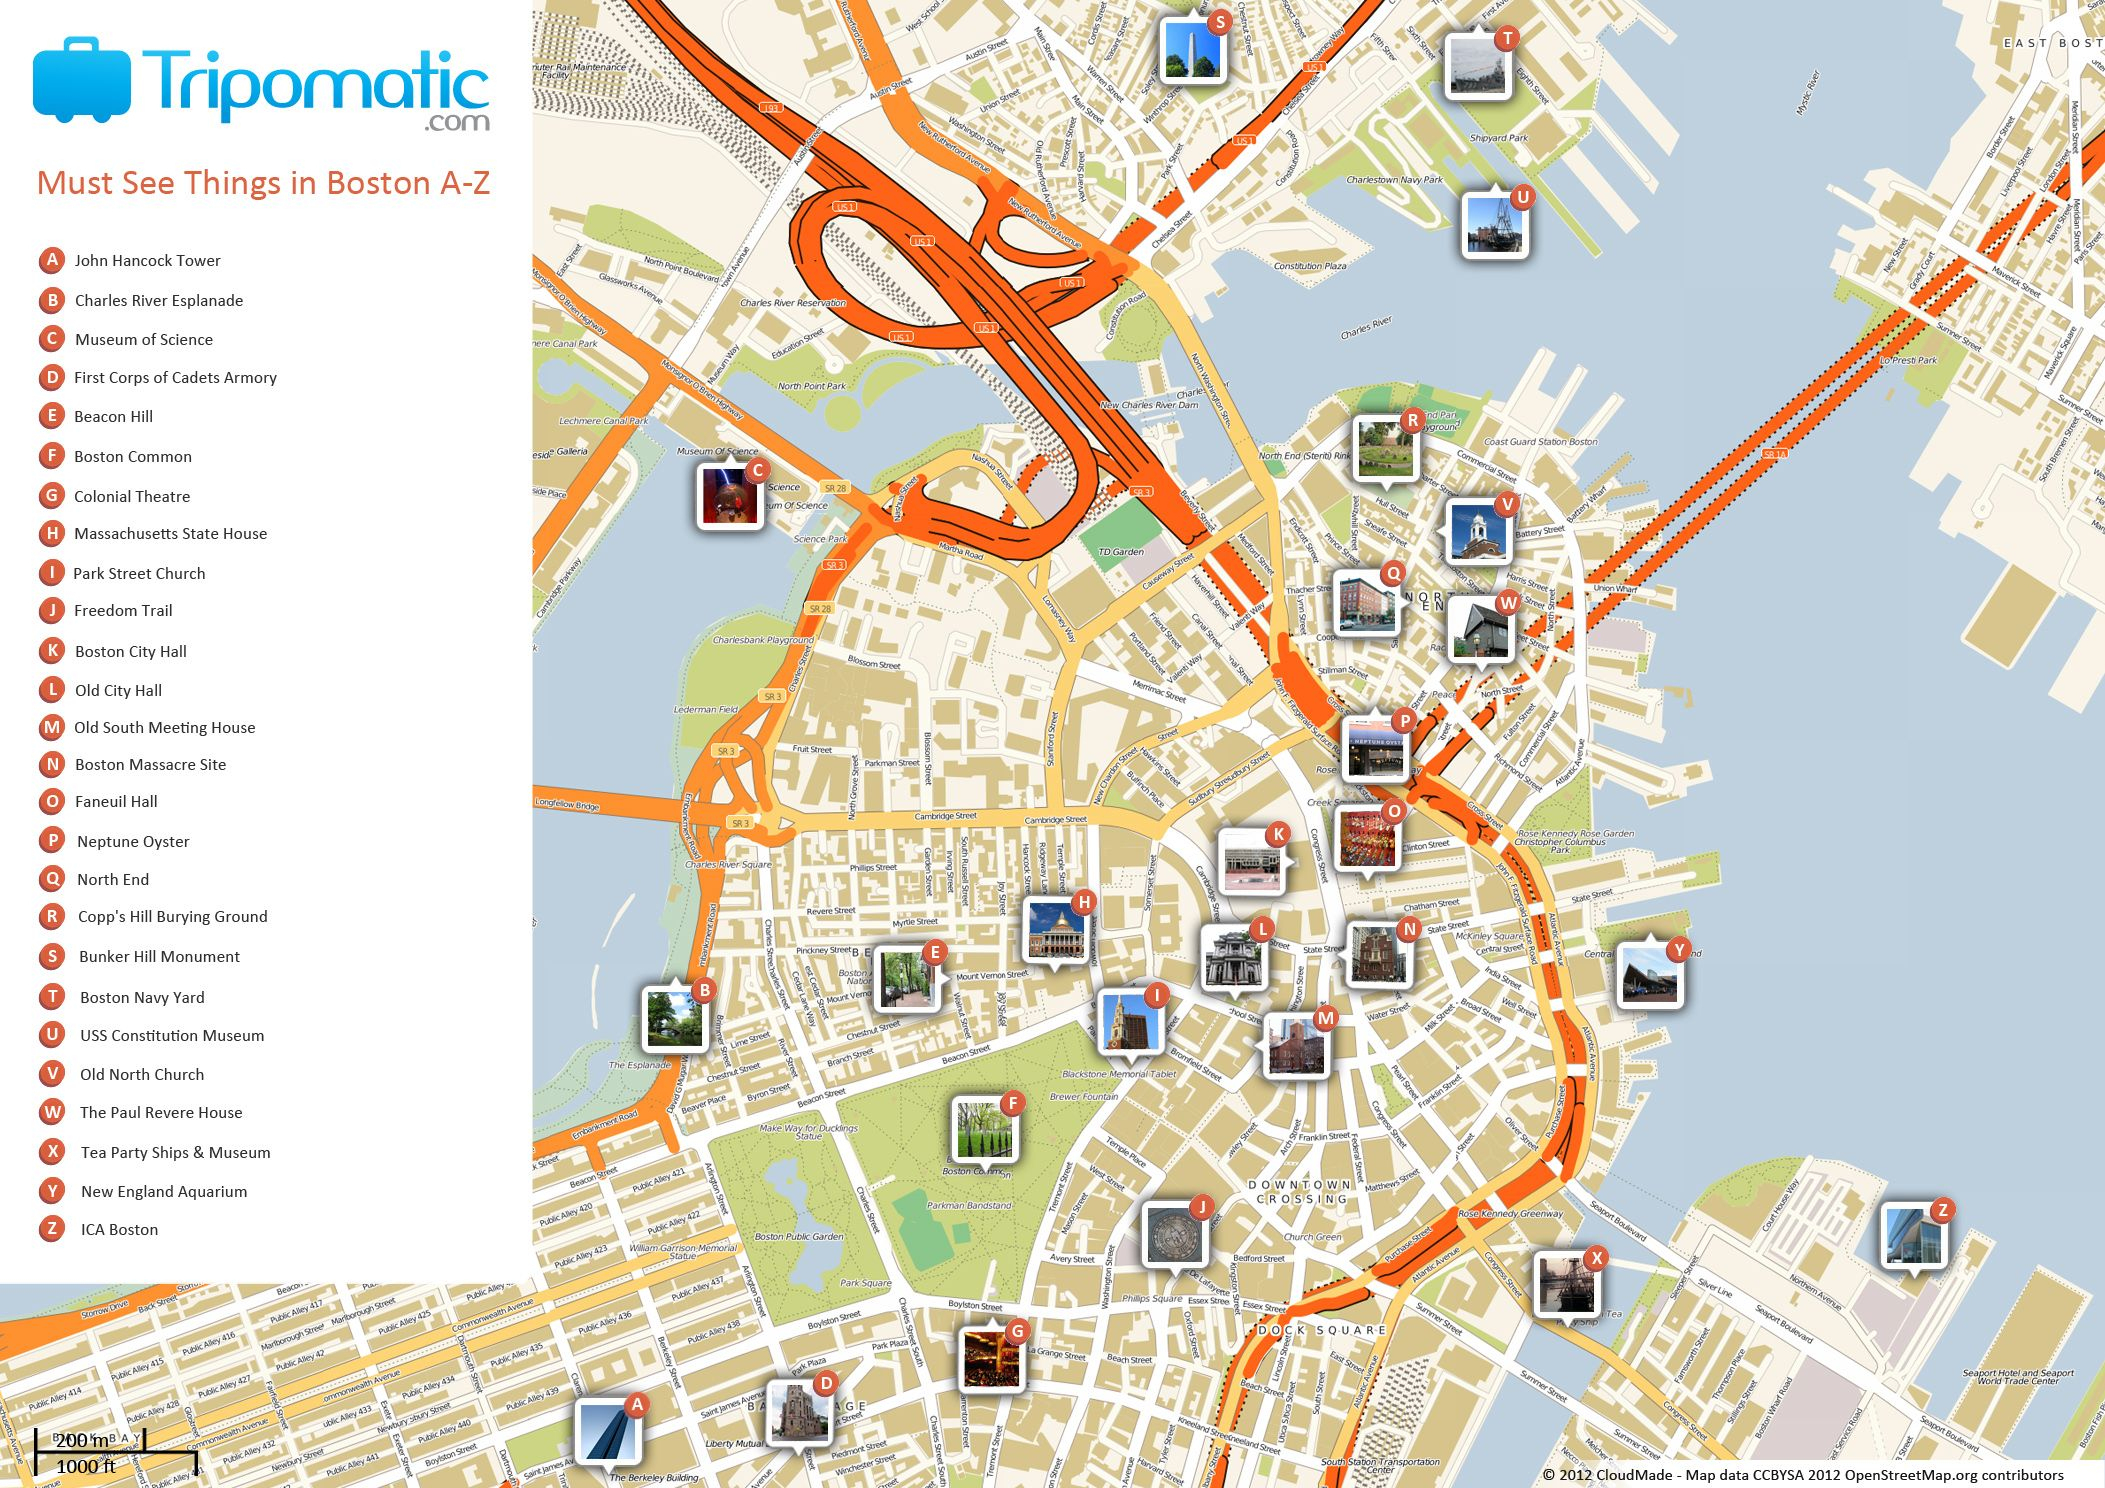 Free Printable Map Of Boston, Ma Attractions. | Free Tourist Maps - Boston Tourist Map Printable